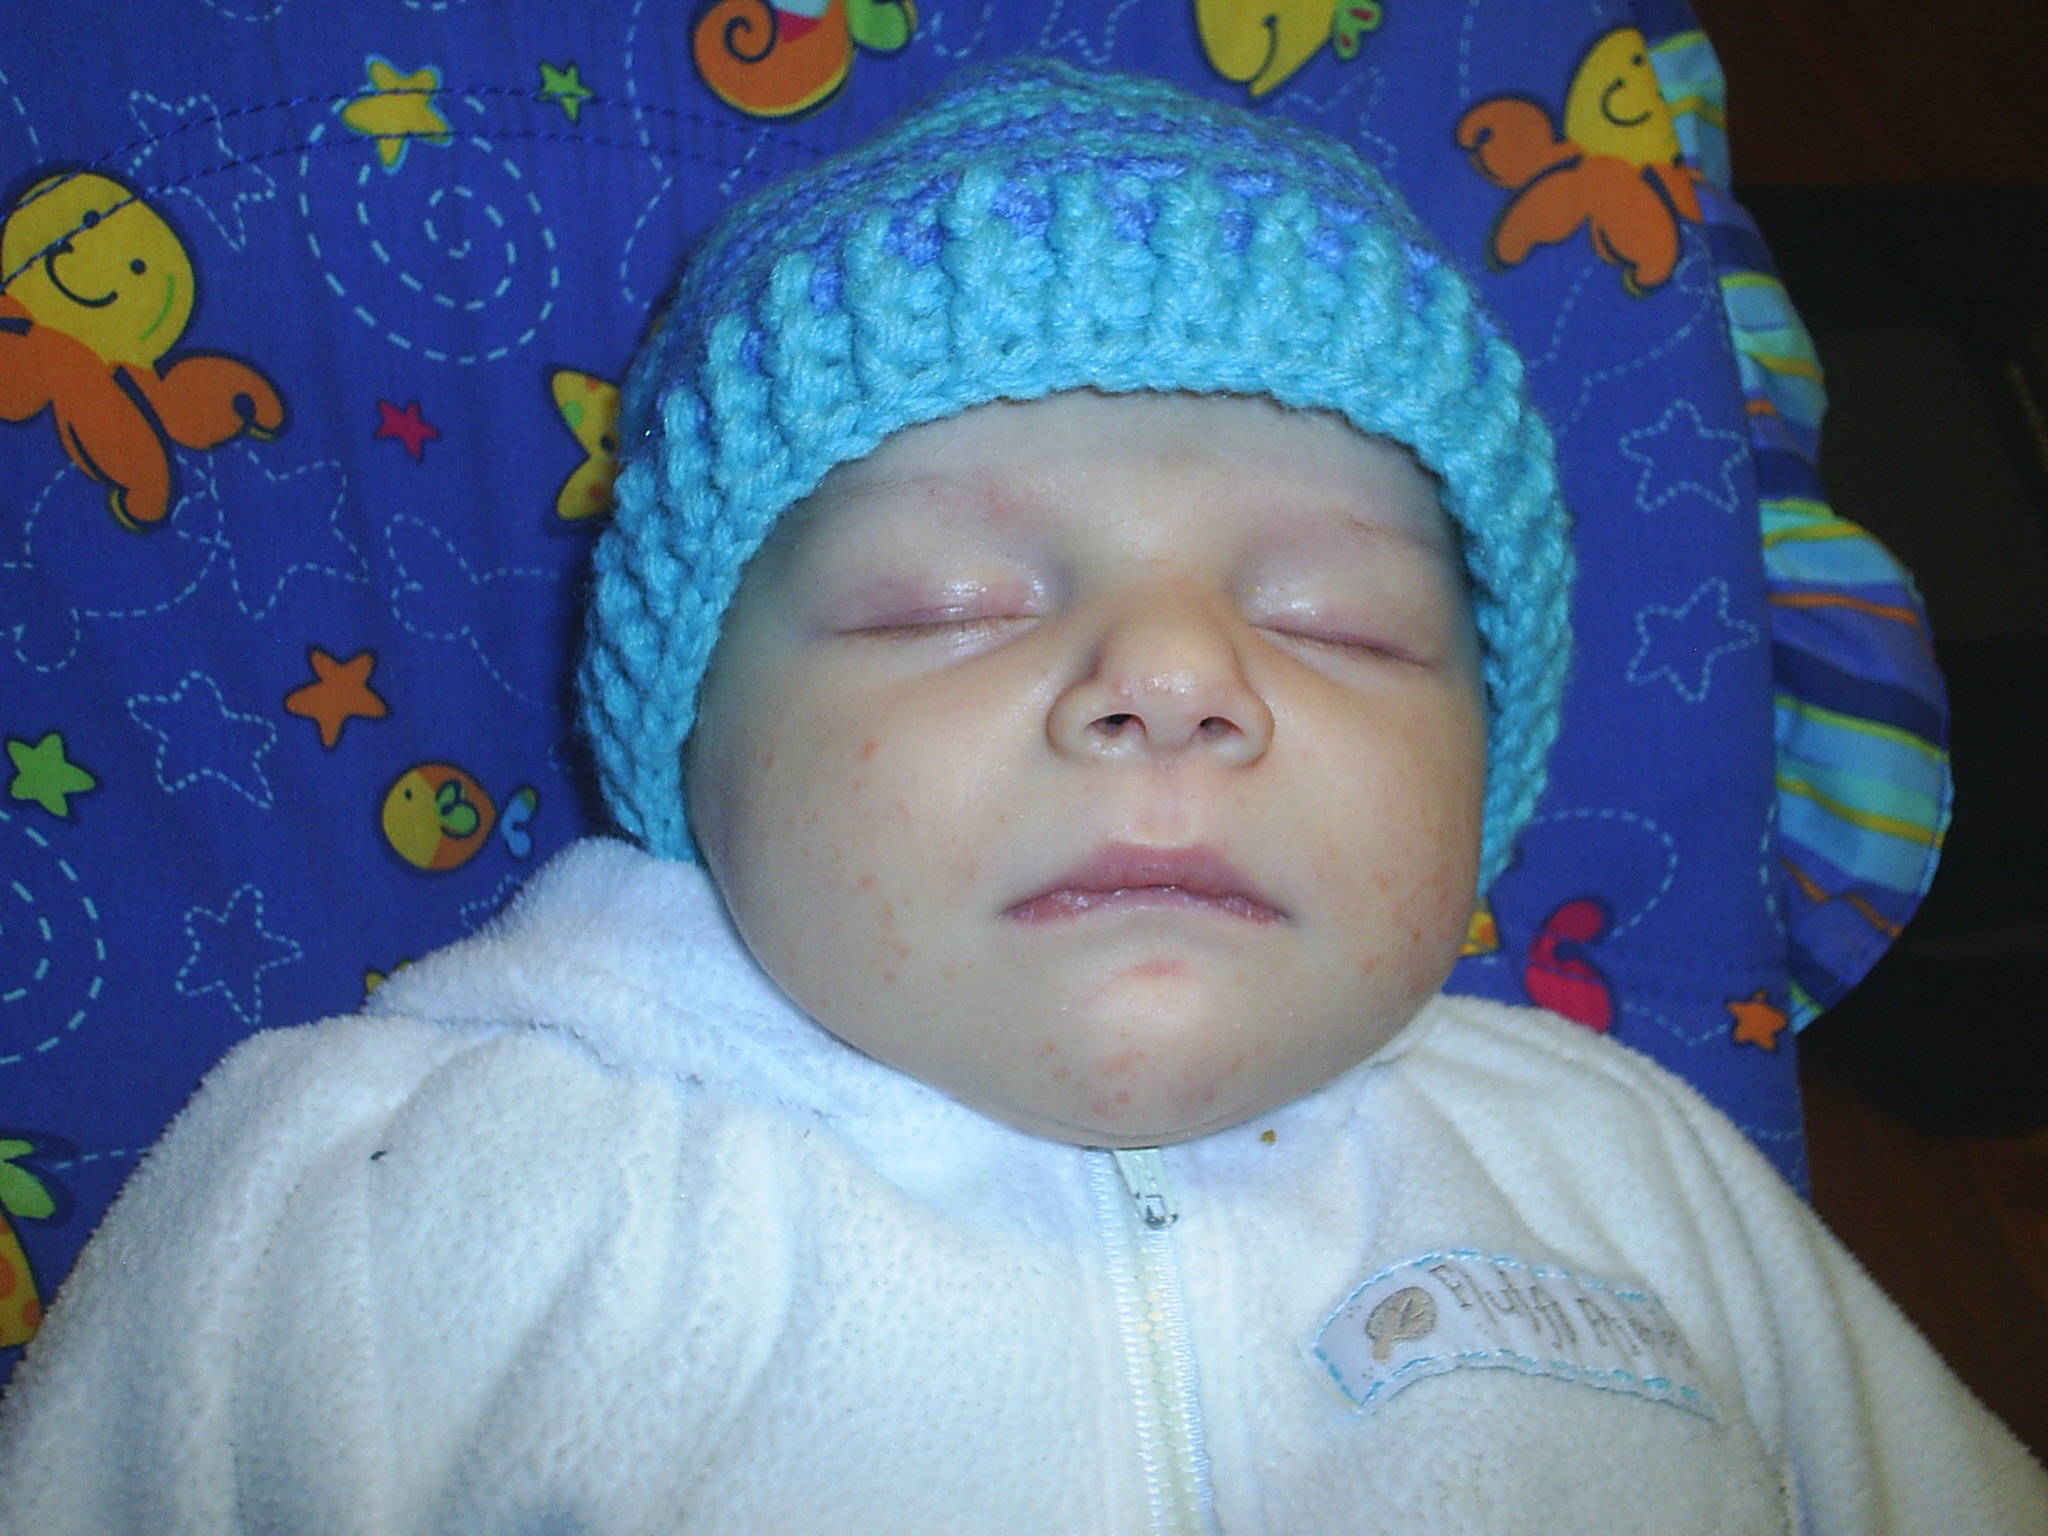 Crochet Baby Boy Visor Hat Pattern : Toddler Crochet Hat Pattern - Modern Homemakers